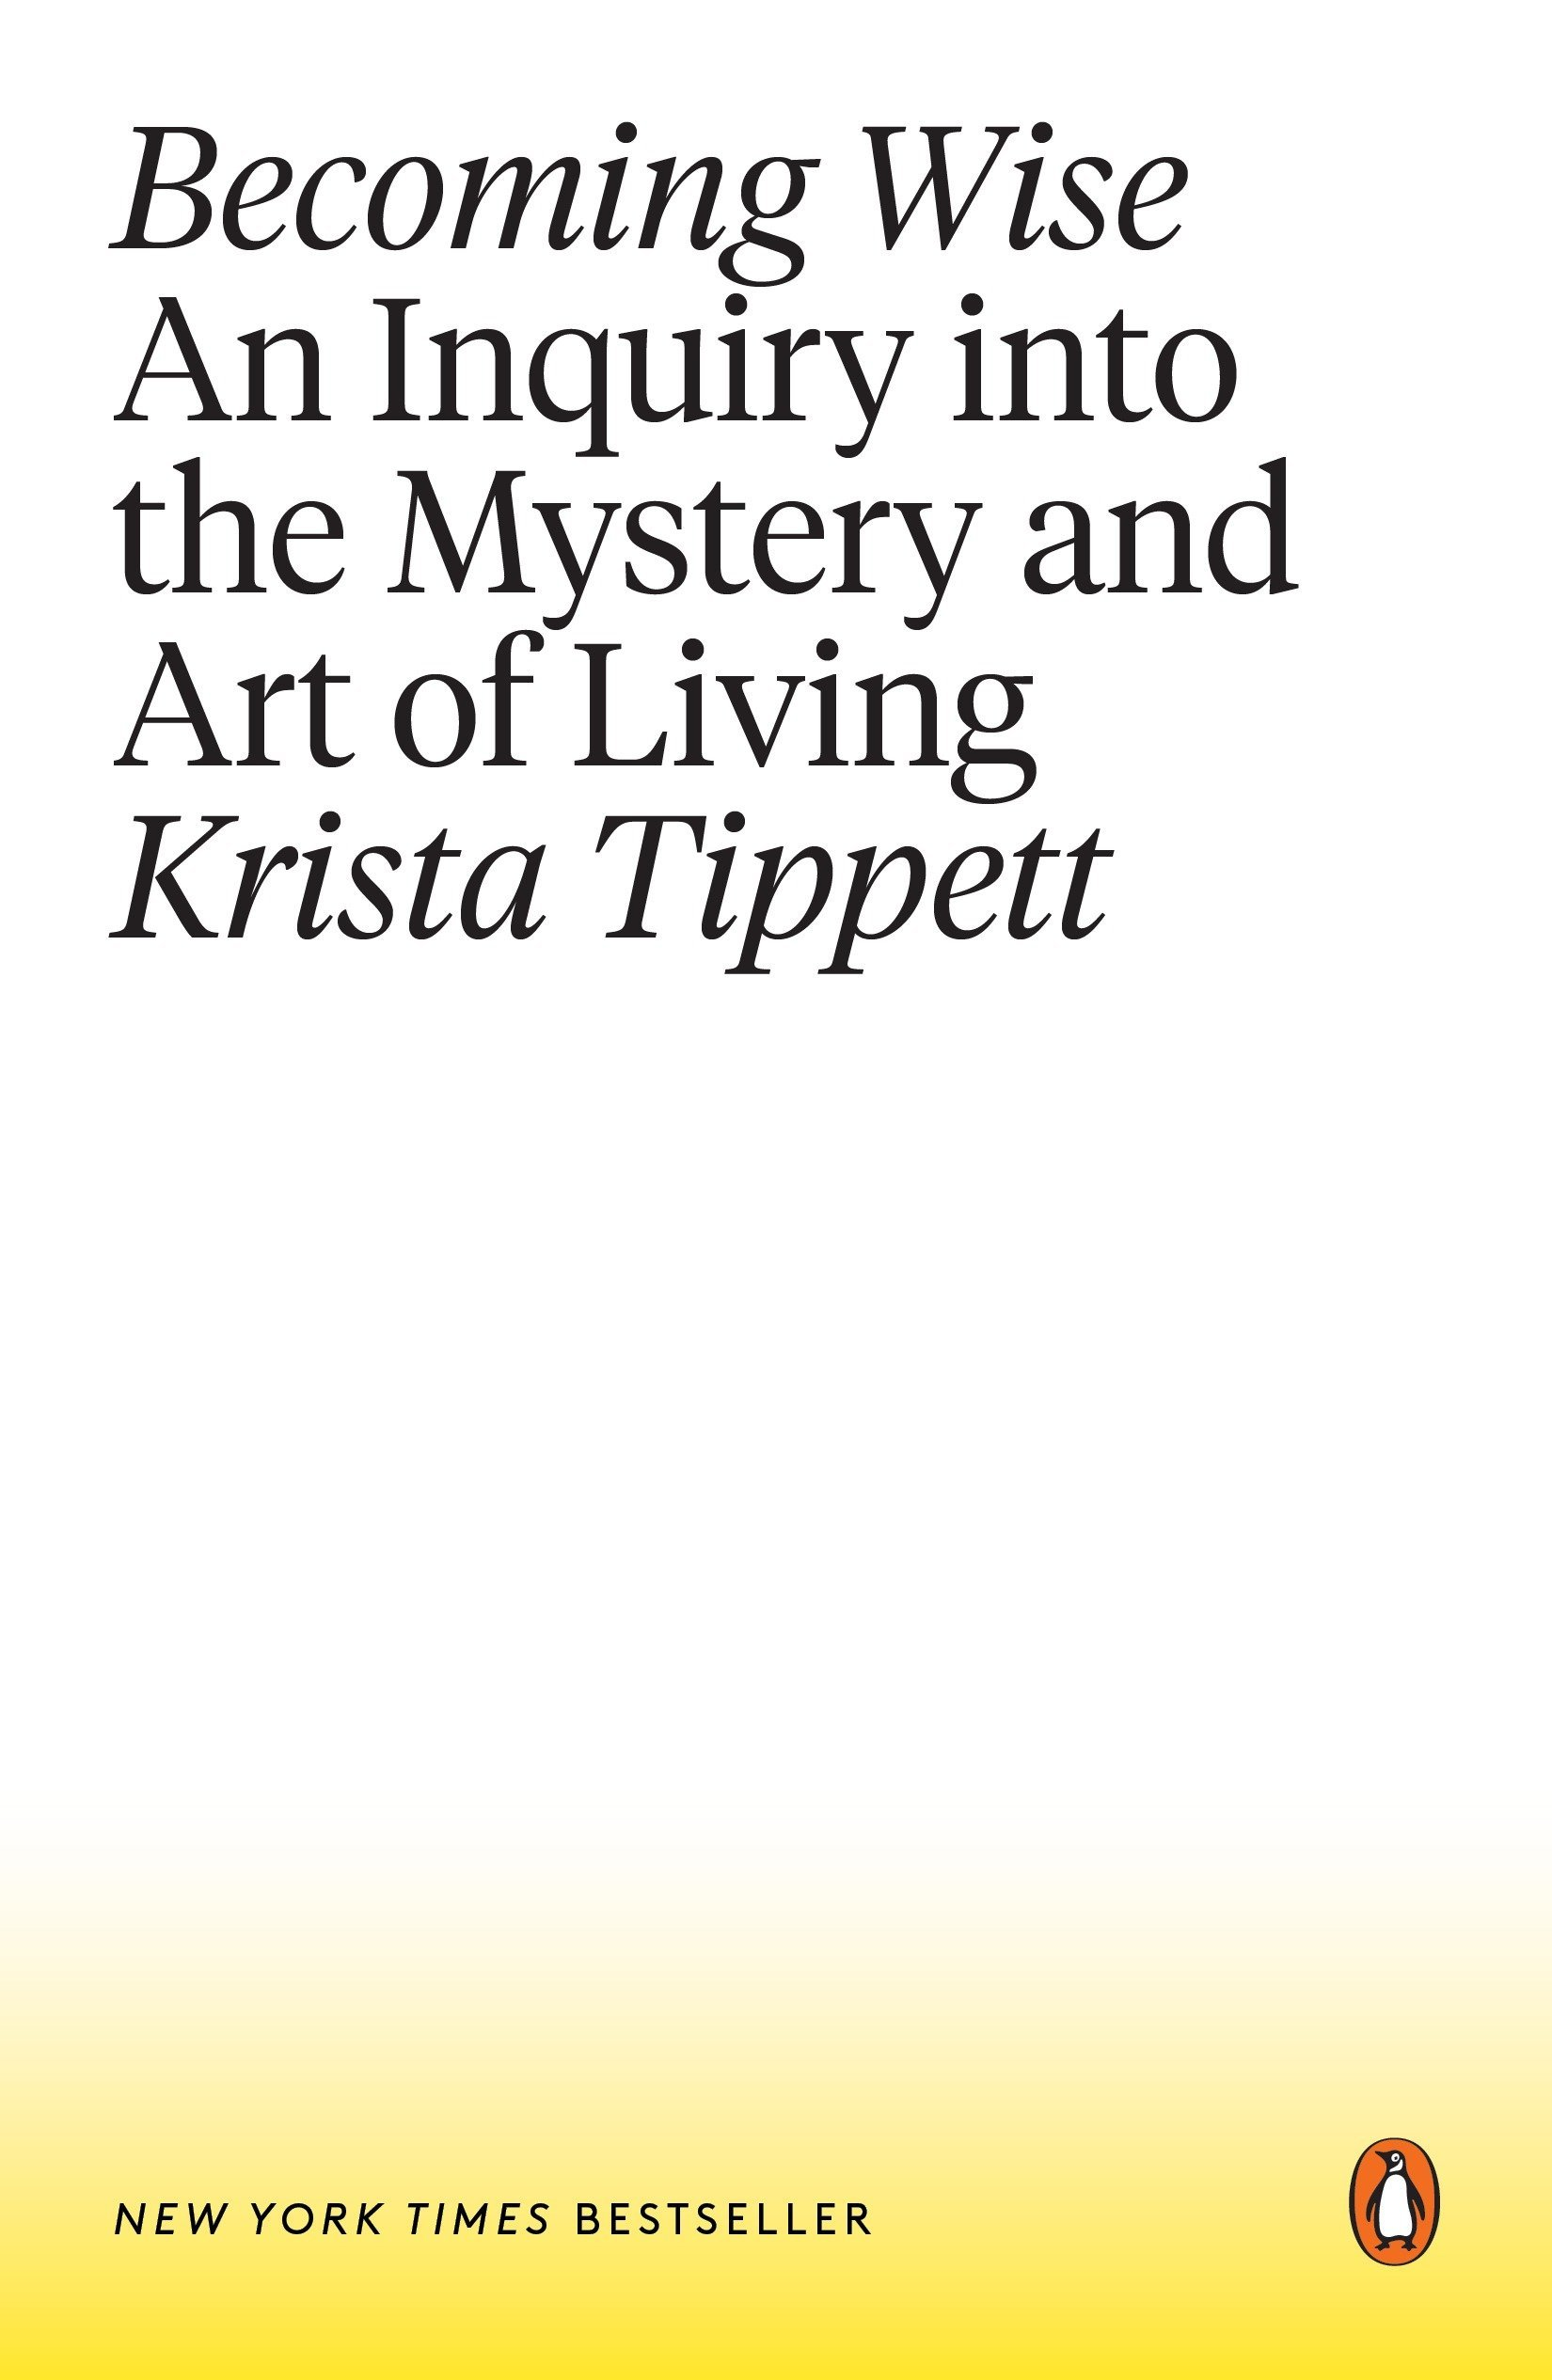 Download Becoming Wise: An Inquiry into the Mystery and Art of Living pdf